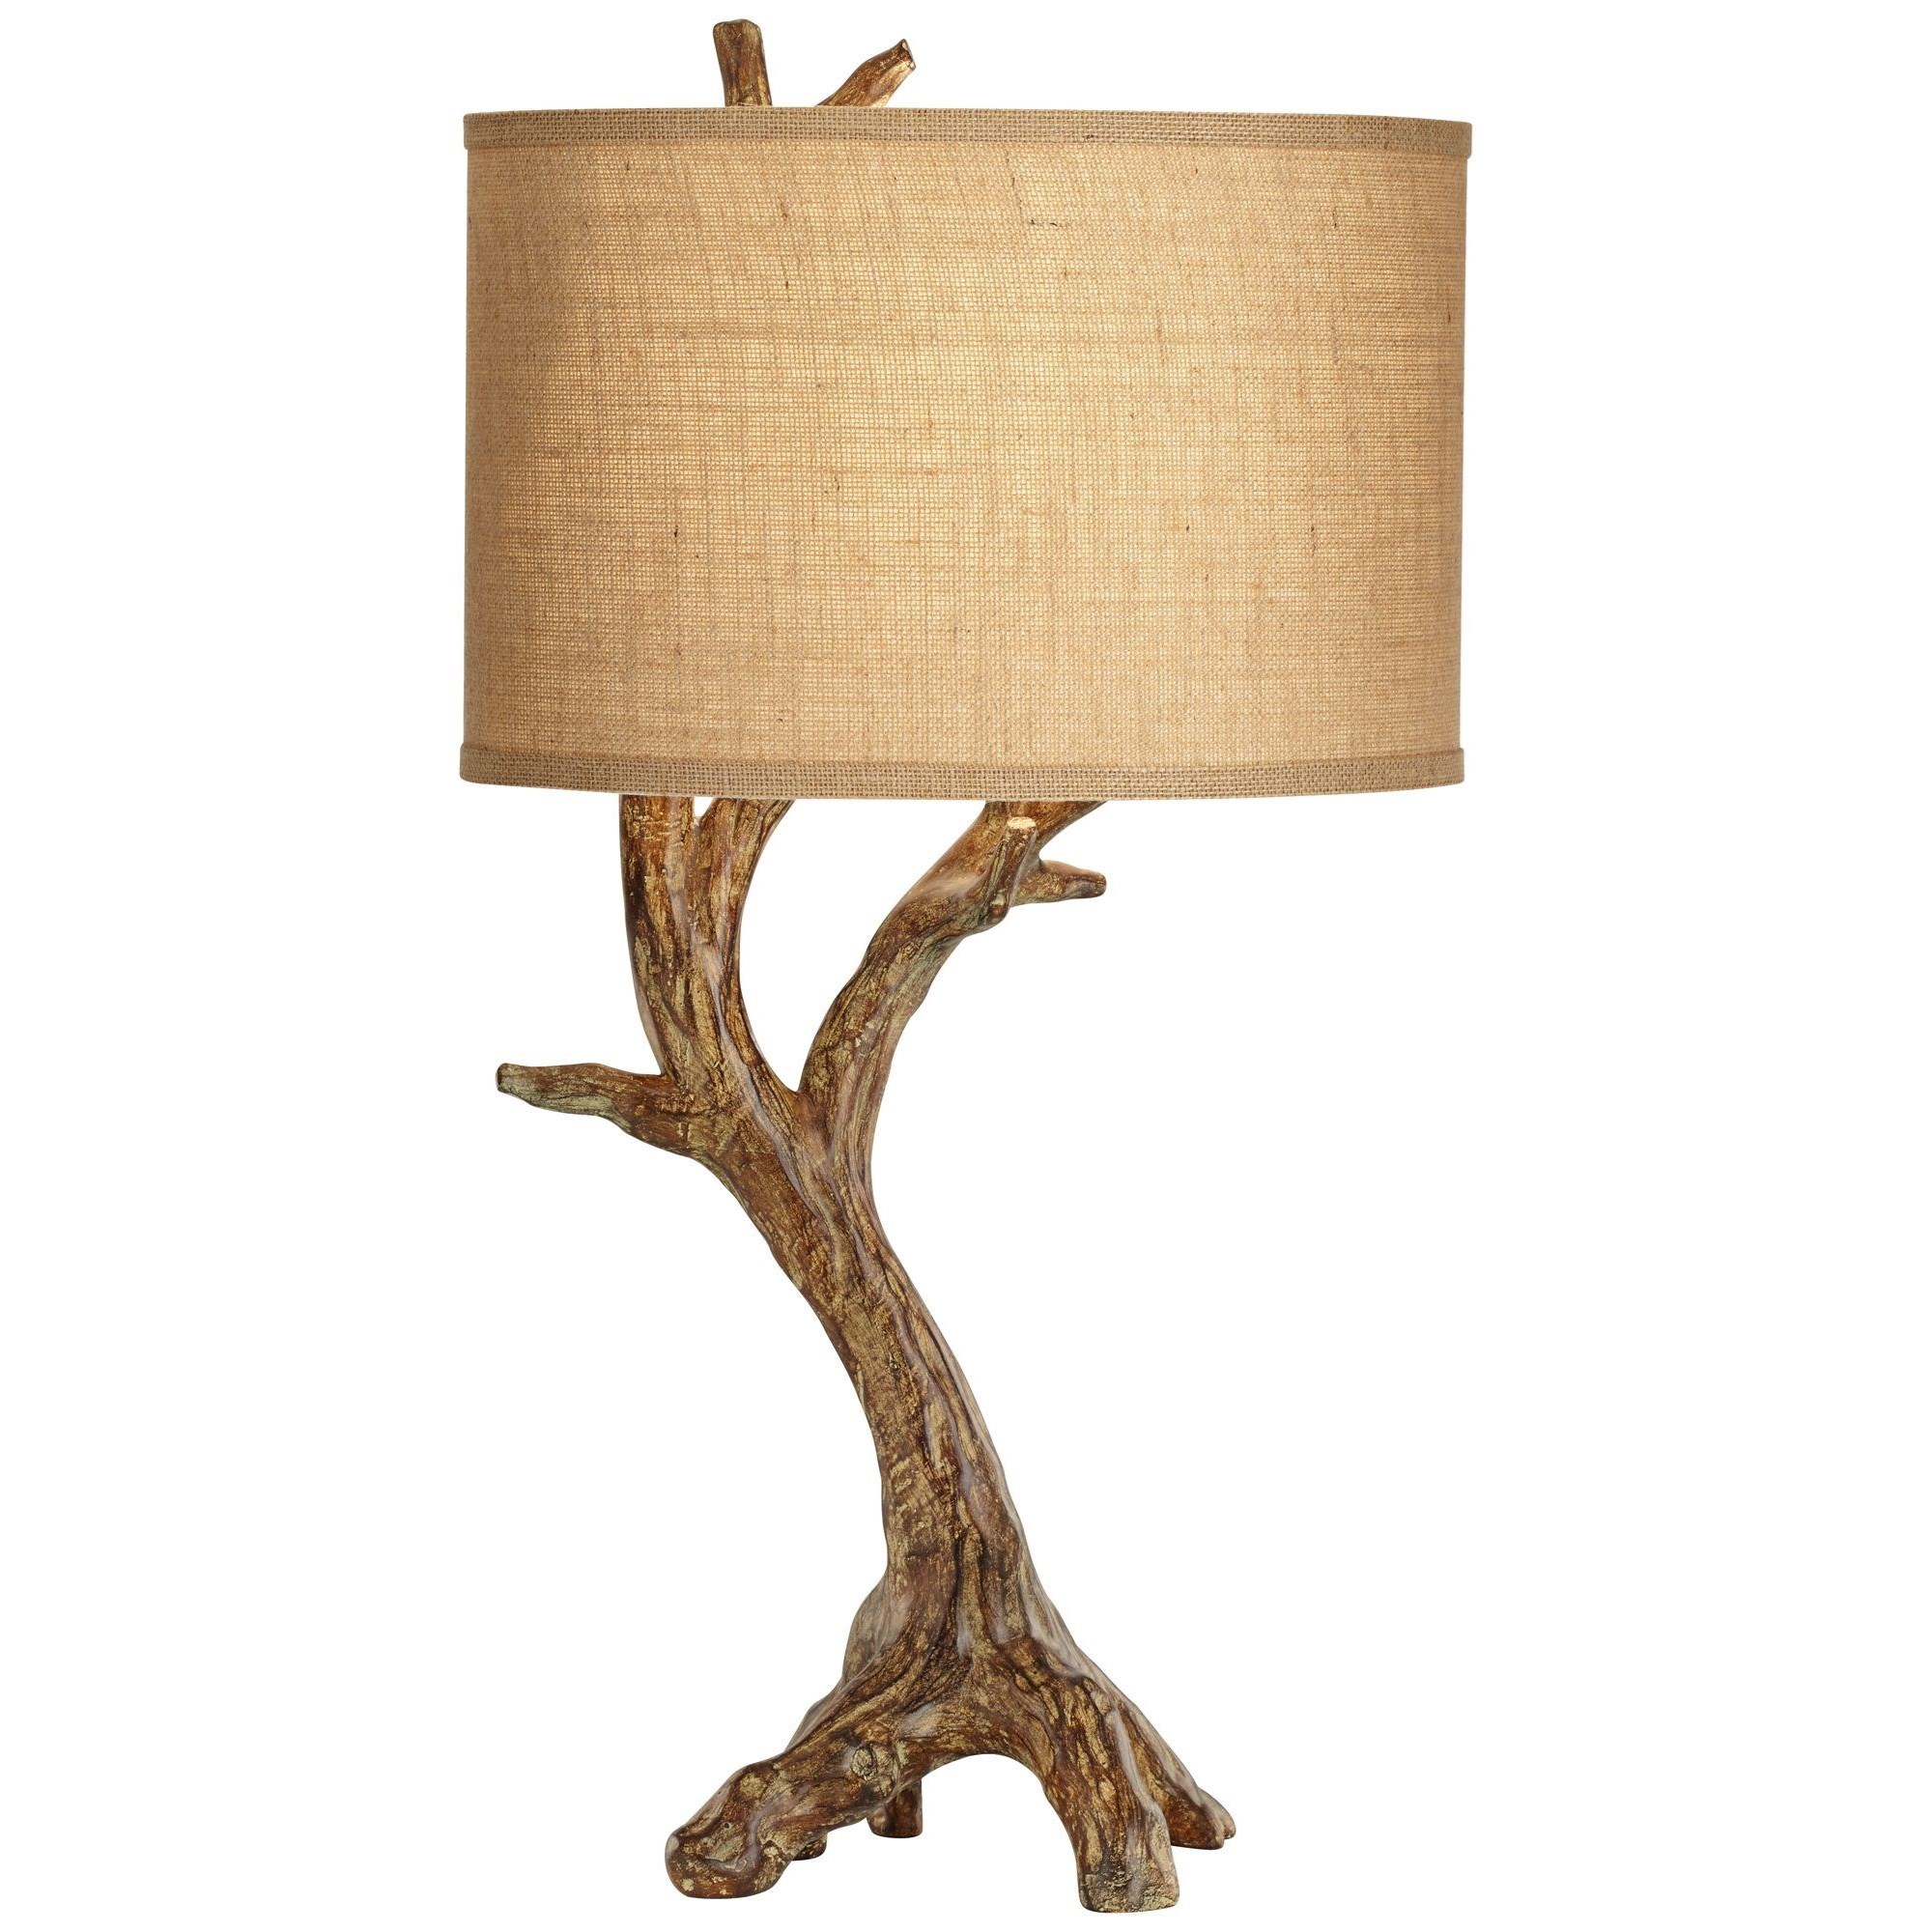 Table Lamps Beachwood Table Lamp  at Bennett's Furniture and Mattresses